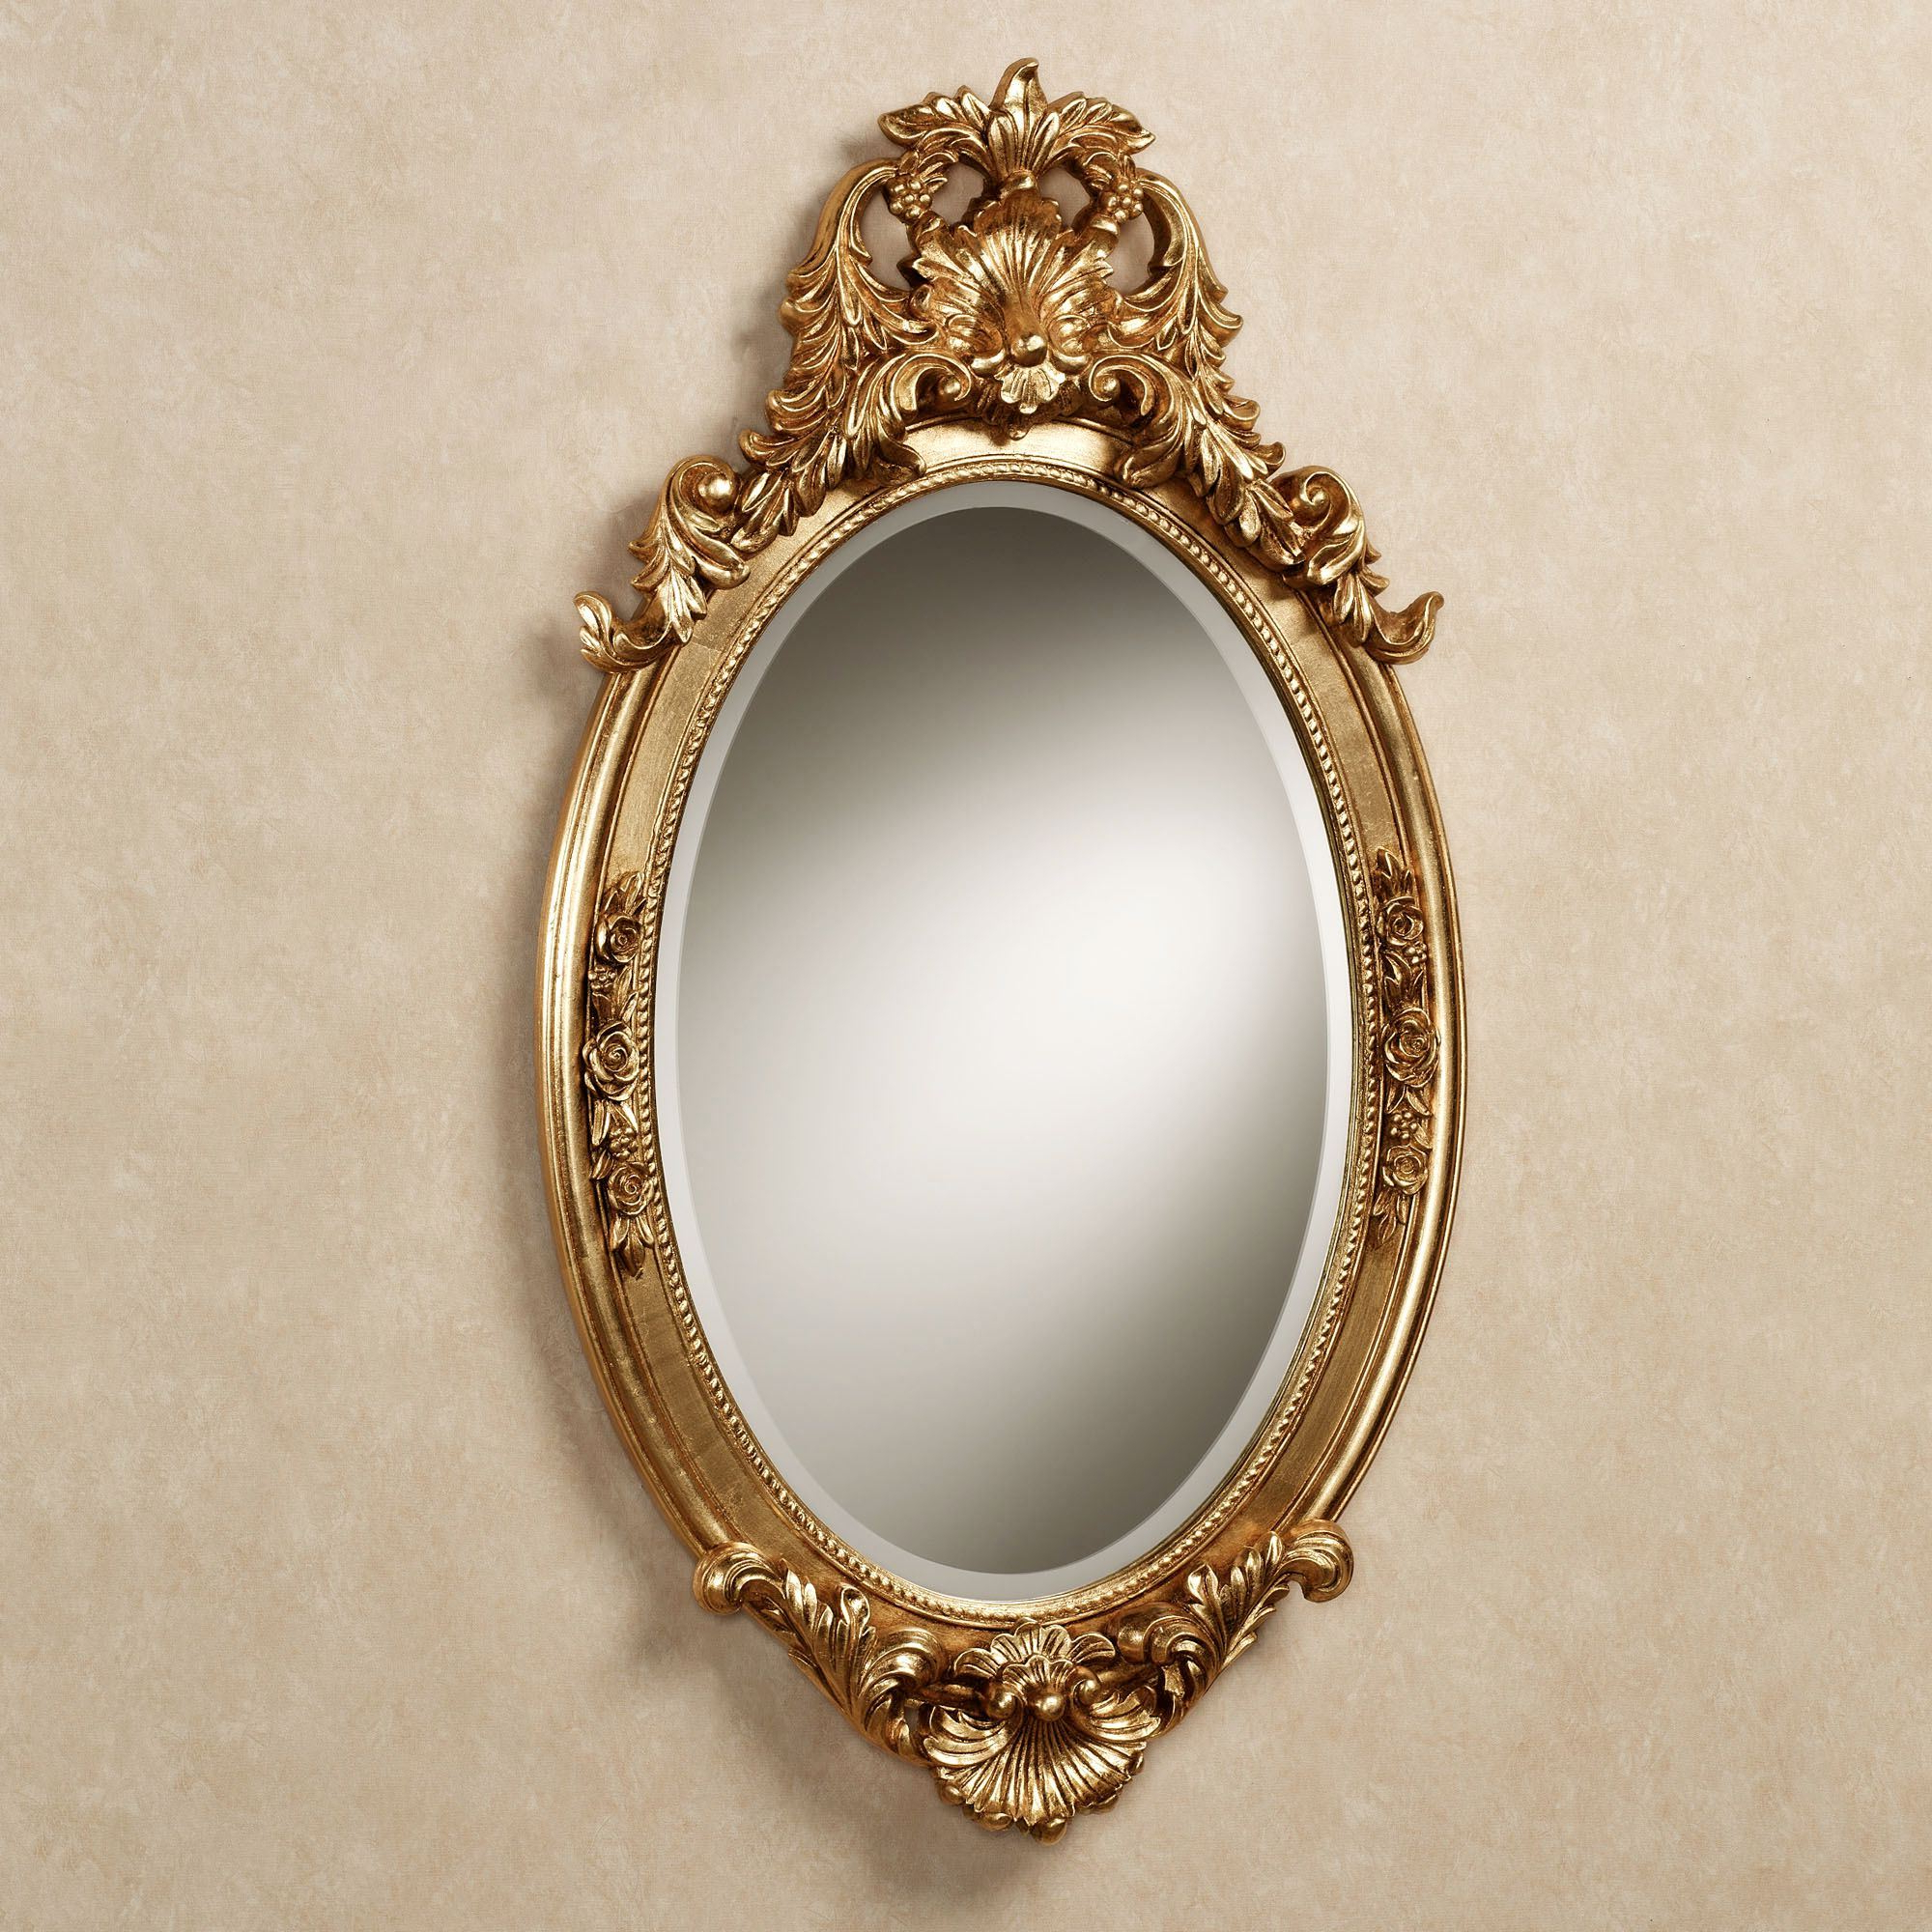 Hallandale Acanthus Leaf Oval Wall Mirror Pertaining To Widely Used Antique Oval Wall Mirrors (Gallery 1 of 20)